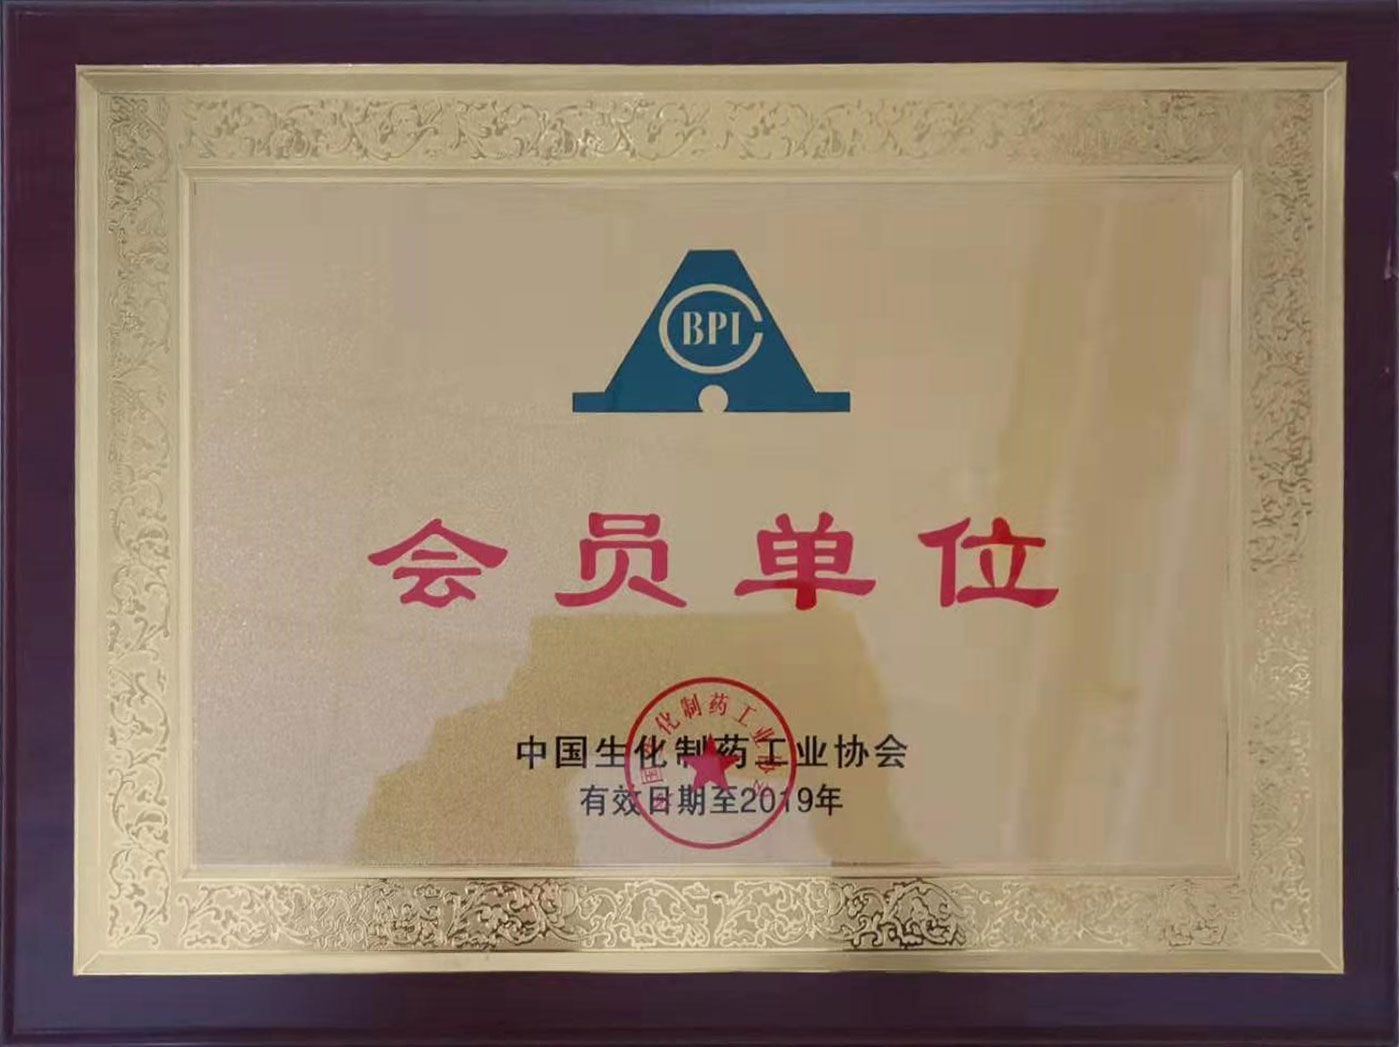 Member of China Biochemical Pharmaceutical Industry Association